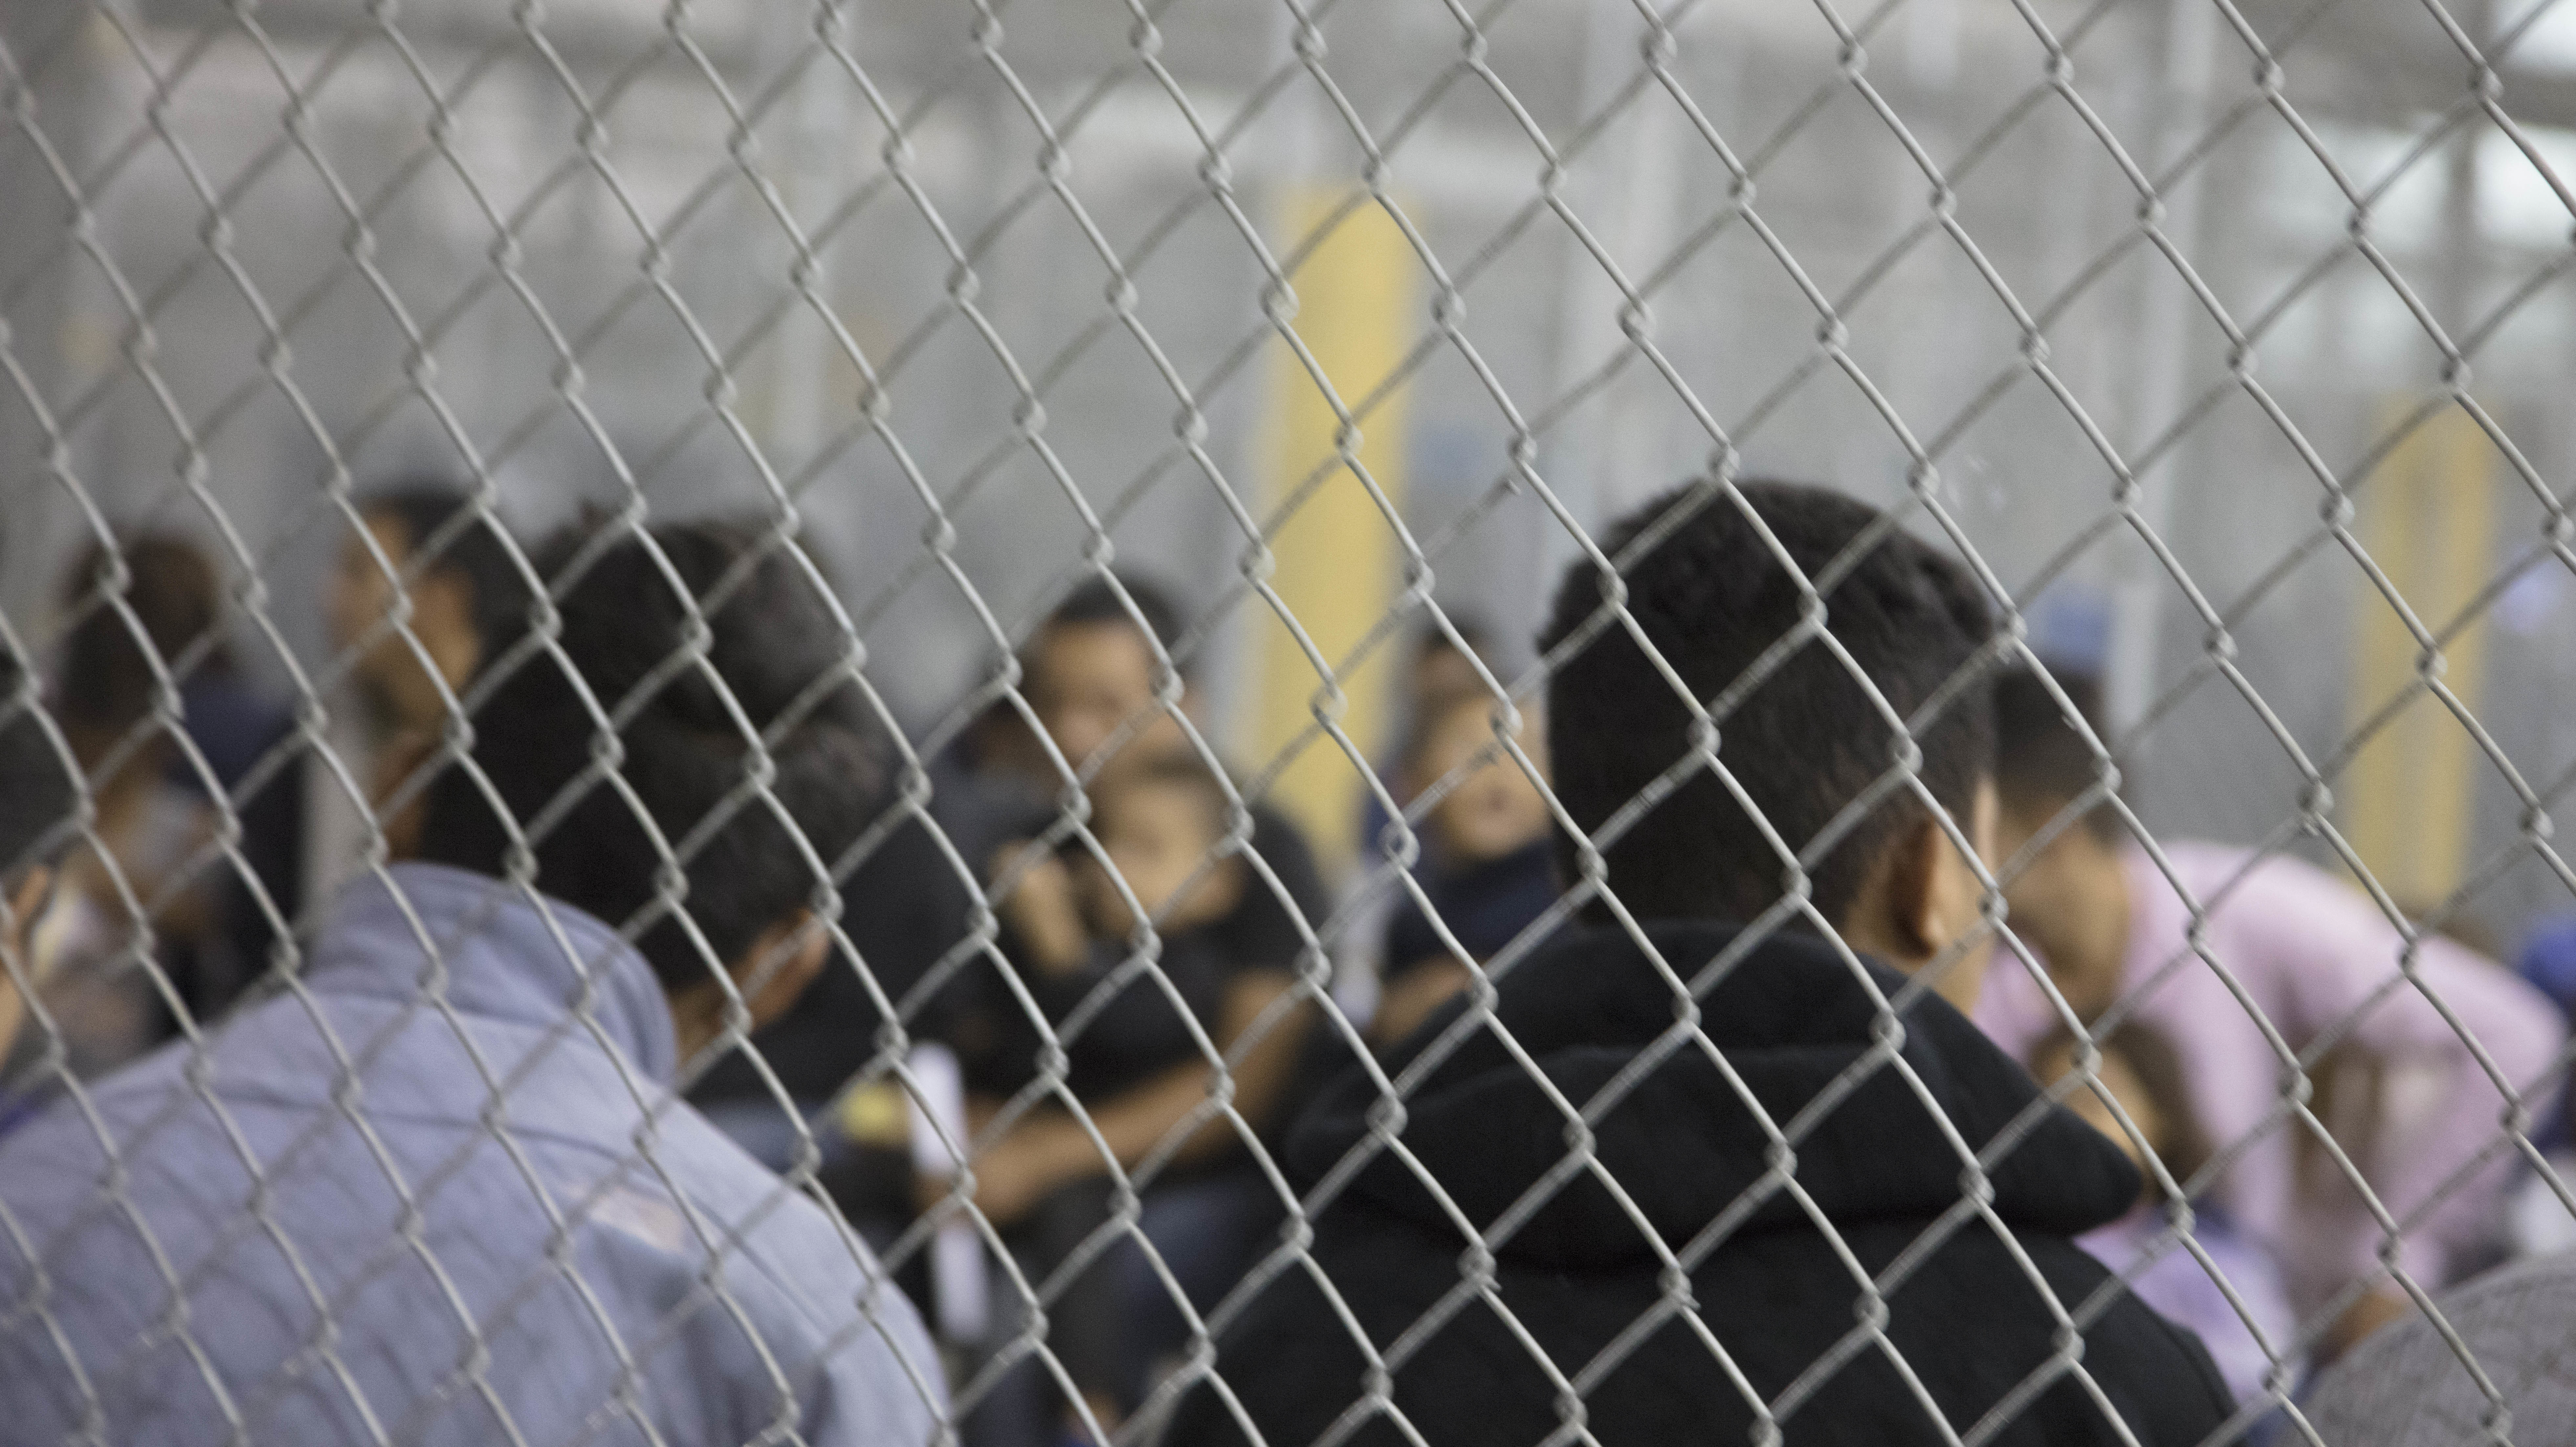 Border Facility Stops Migrant Intake After 'Flu-Related' Outbreak